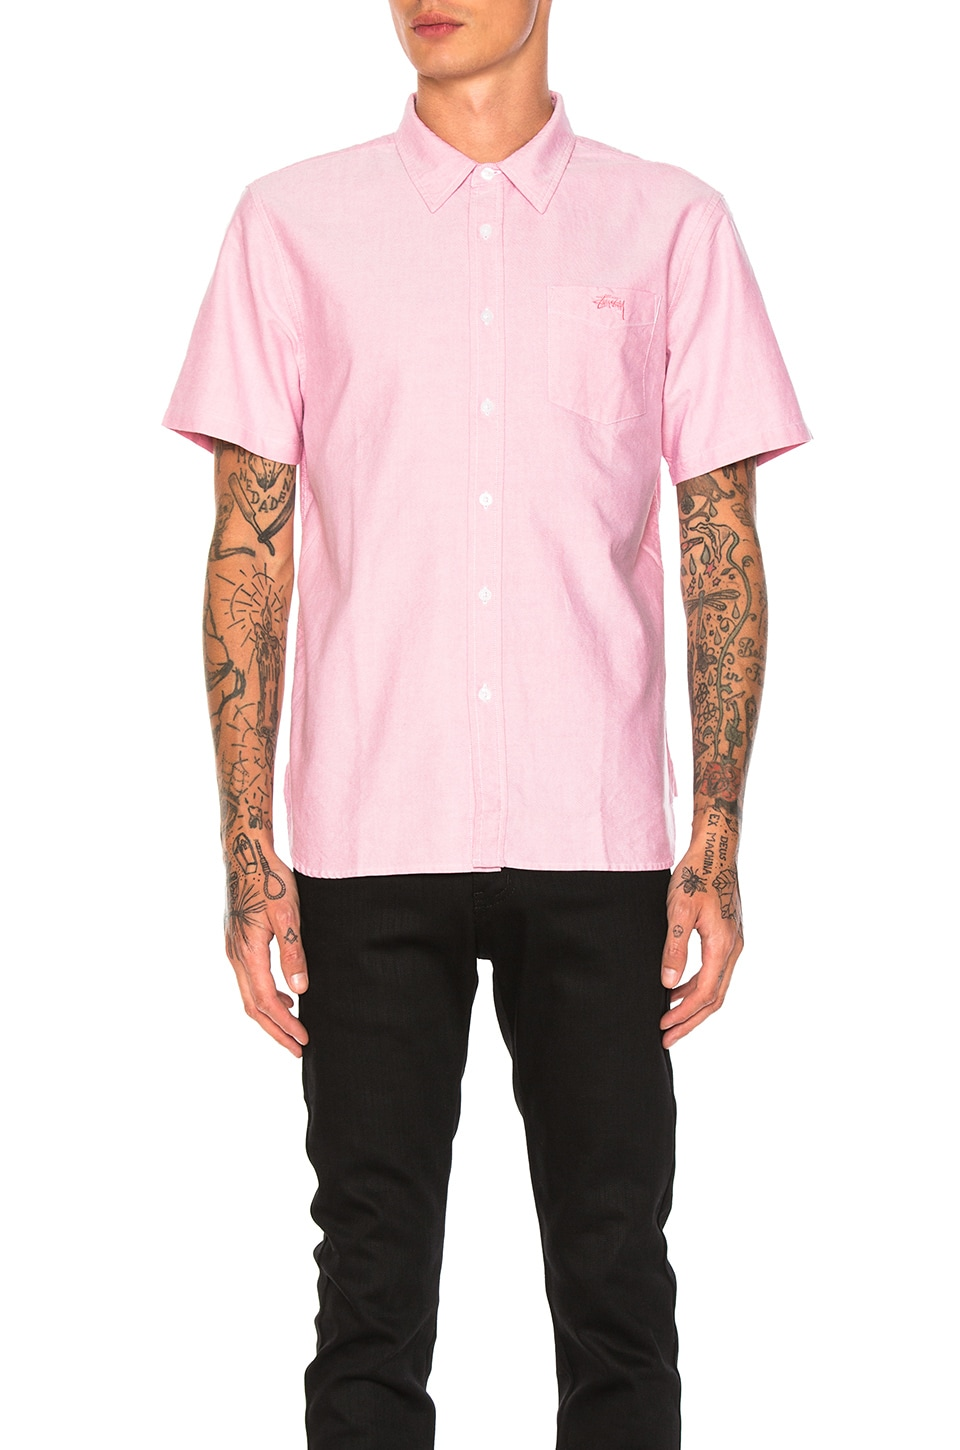 Photo of Classic Oxford Button Down by Stussy men clothes